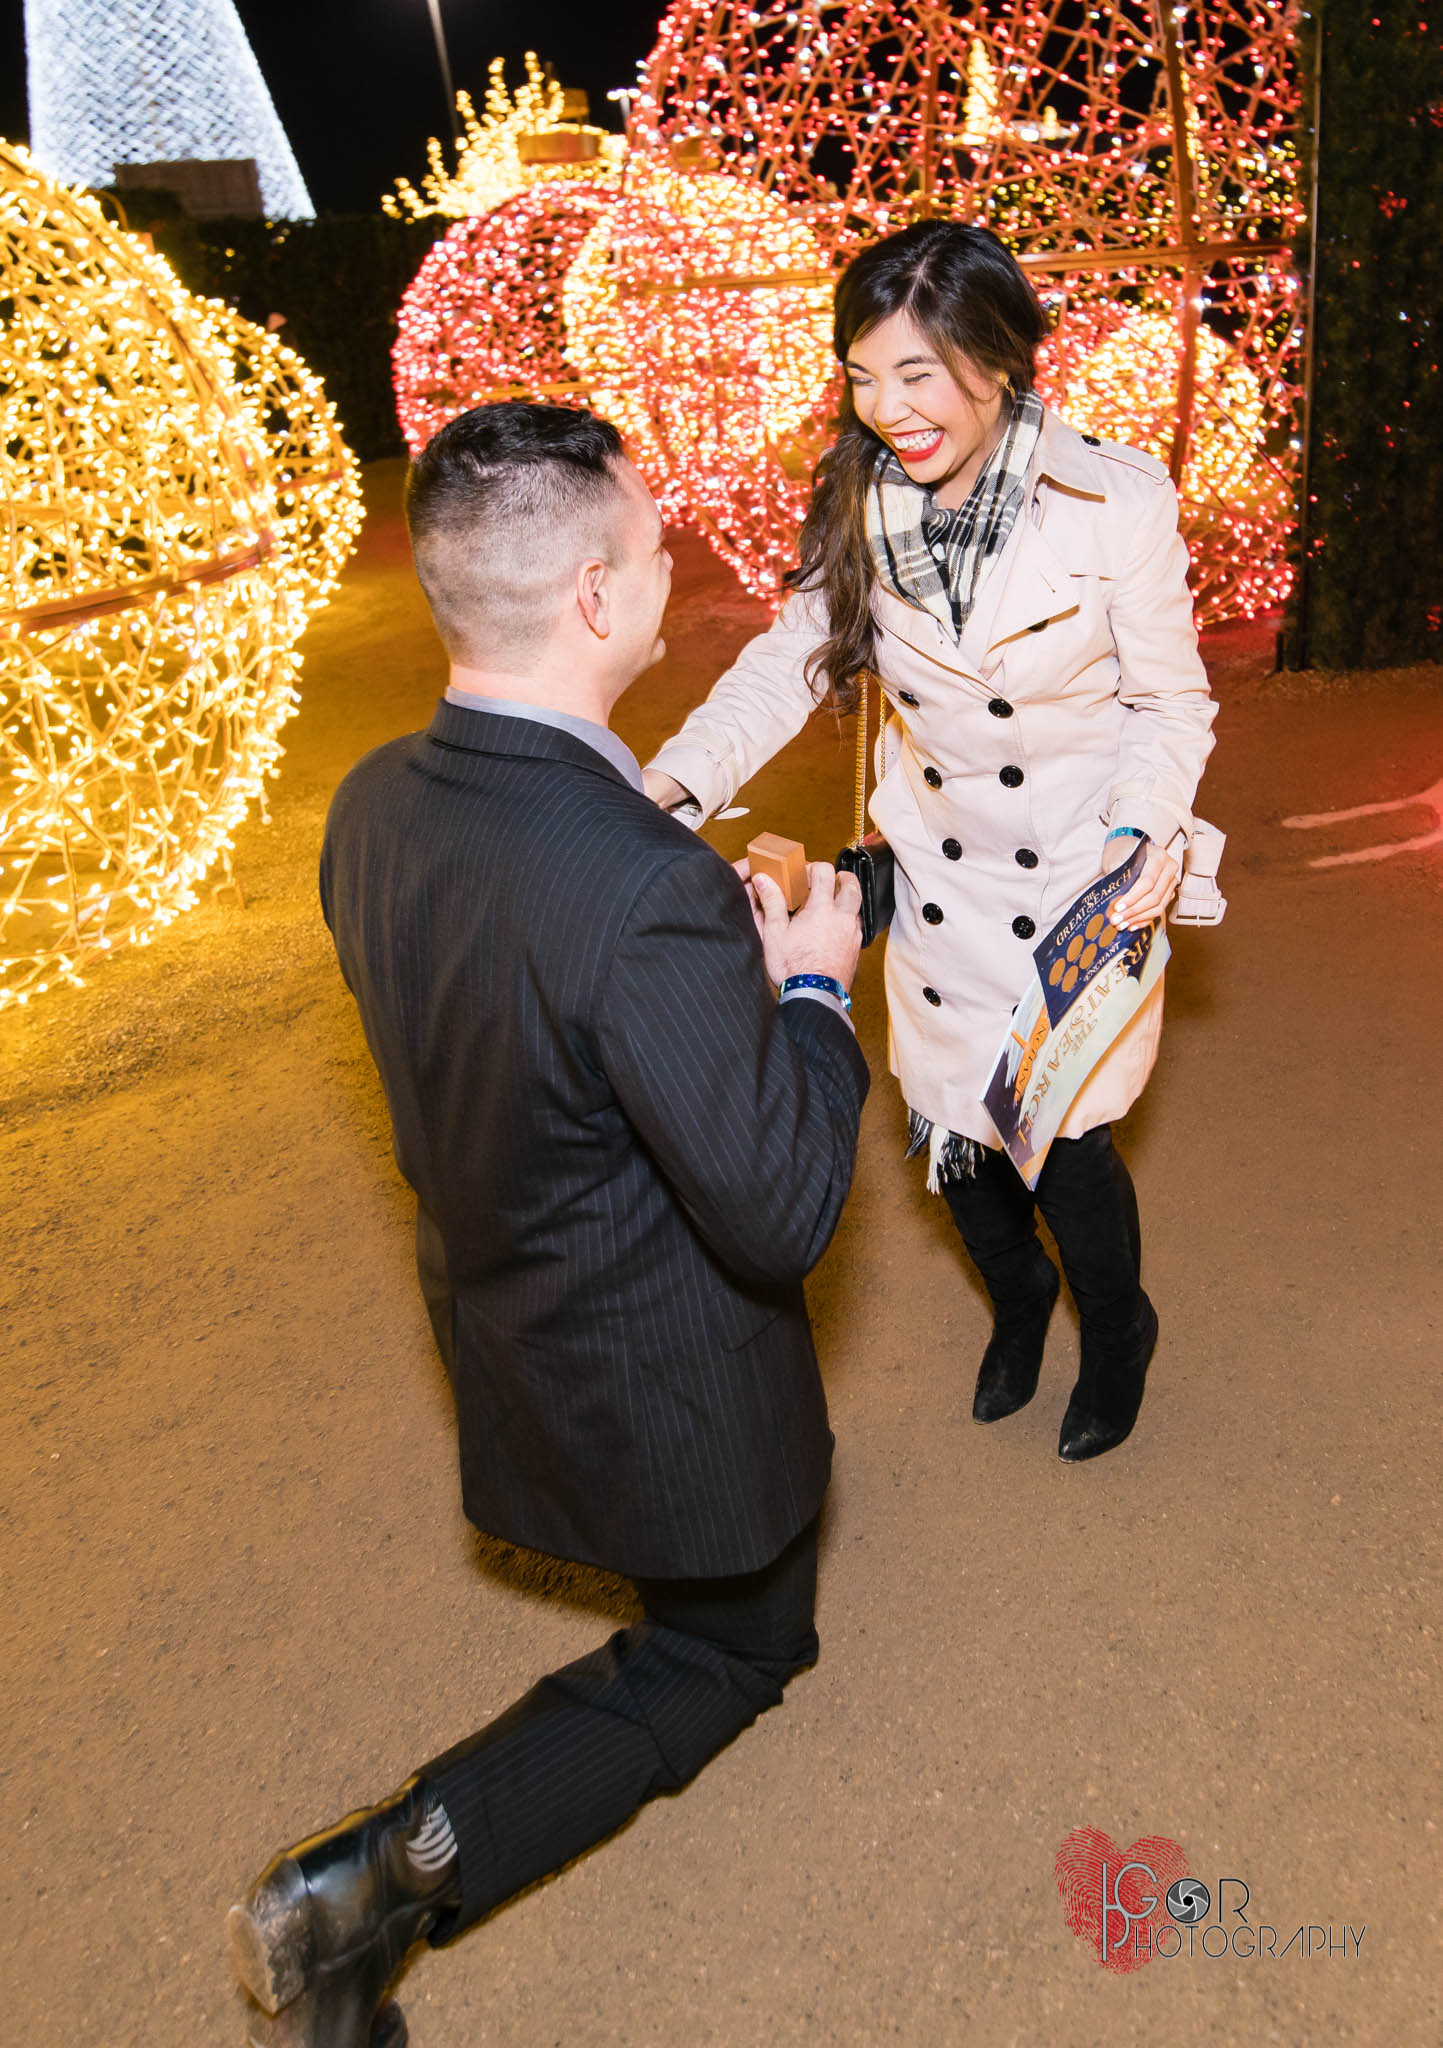 The proposal moment:Did she say yes?, It's pretty safe to say that she did judging by her smile from ear to ear!